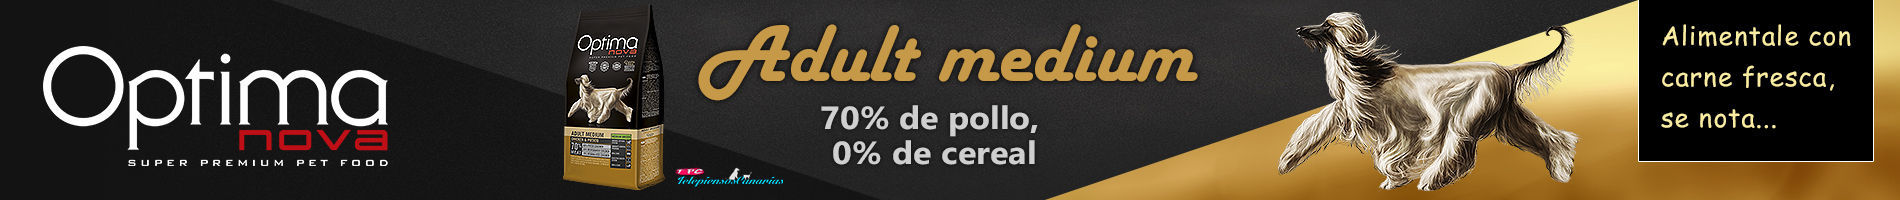 Optima Nova adult medium chicken potato, con 70% de pollo y 15% papa